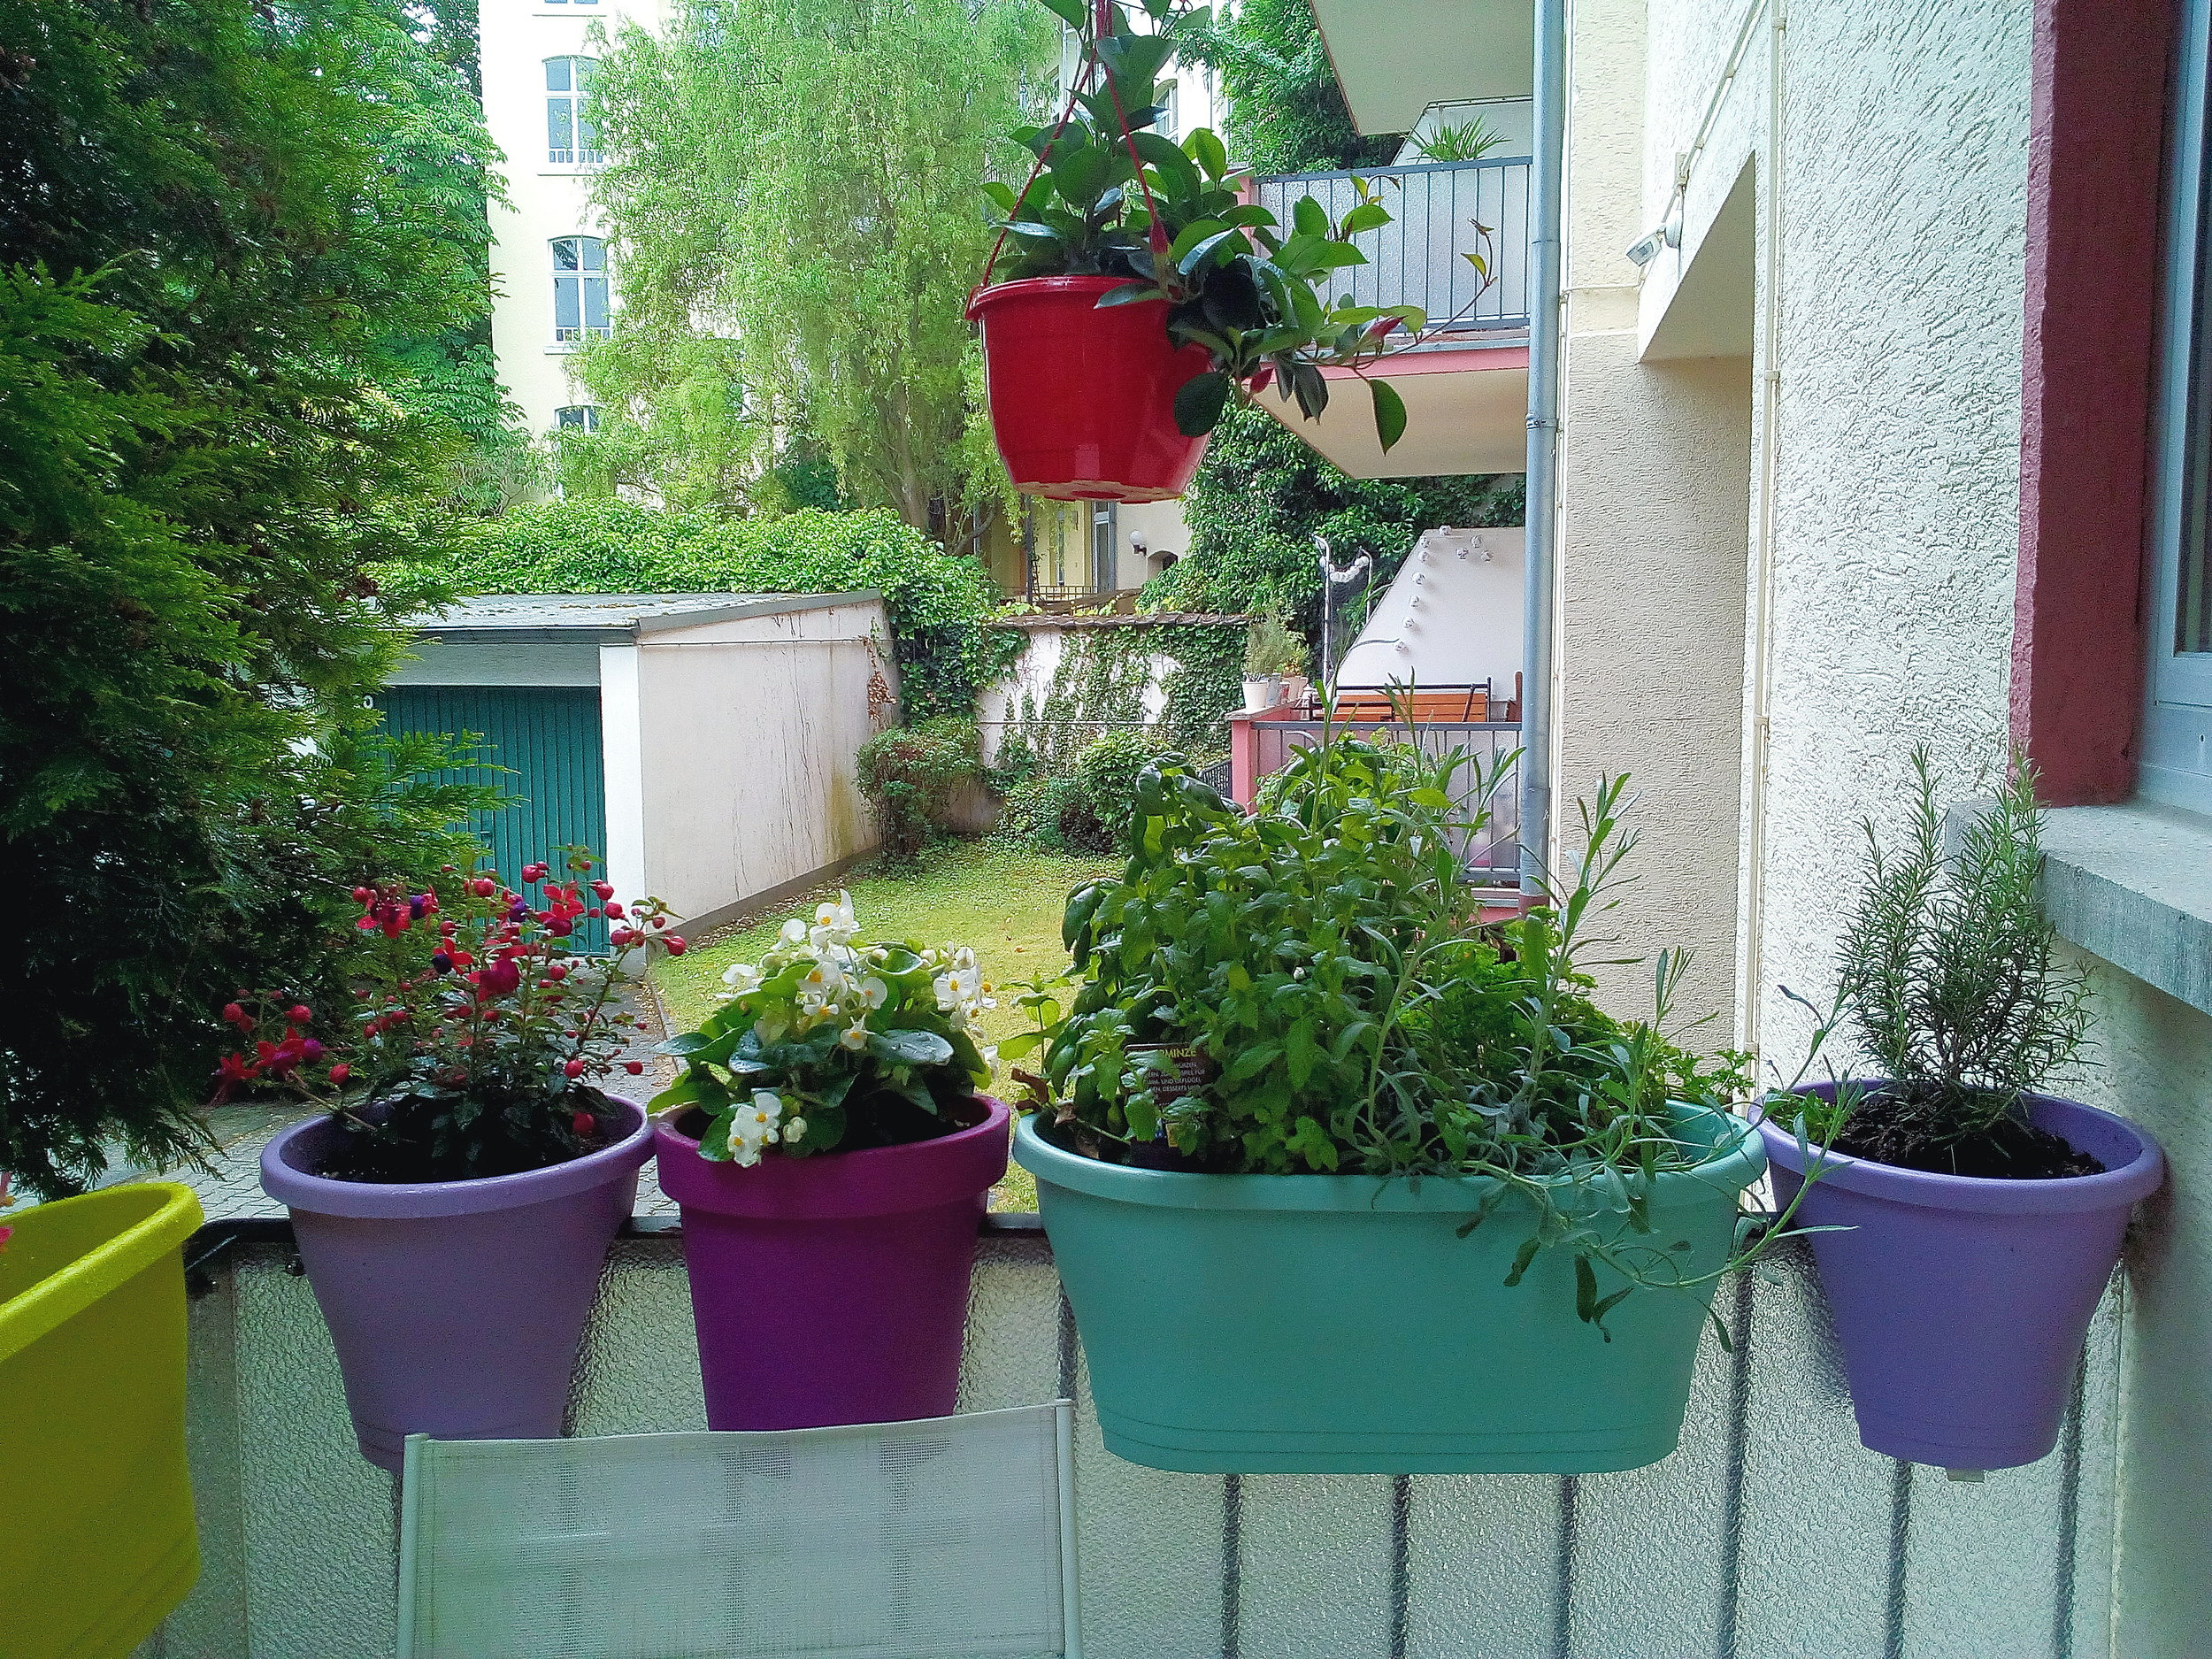 My balcony was a very neglected space already before I moved into my ex-boyfriend's place. But now my mom made it all pretty with lots of colourful pots and flowers so that I have a green oasis that I can enjoy. I love this place now.